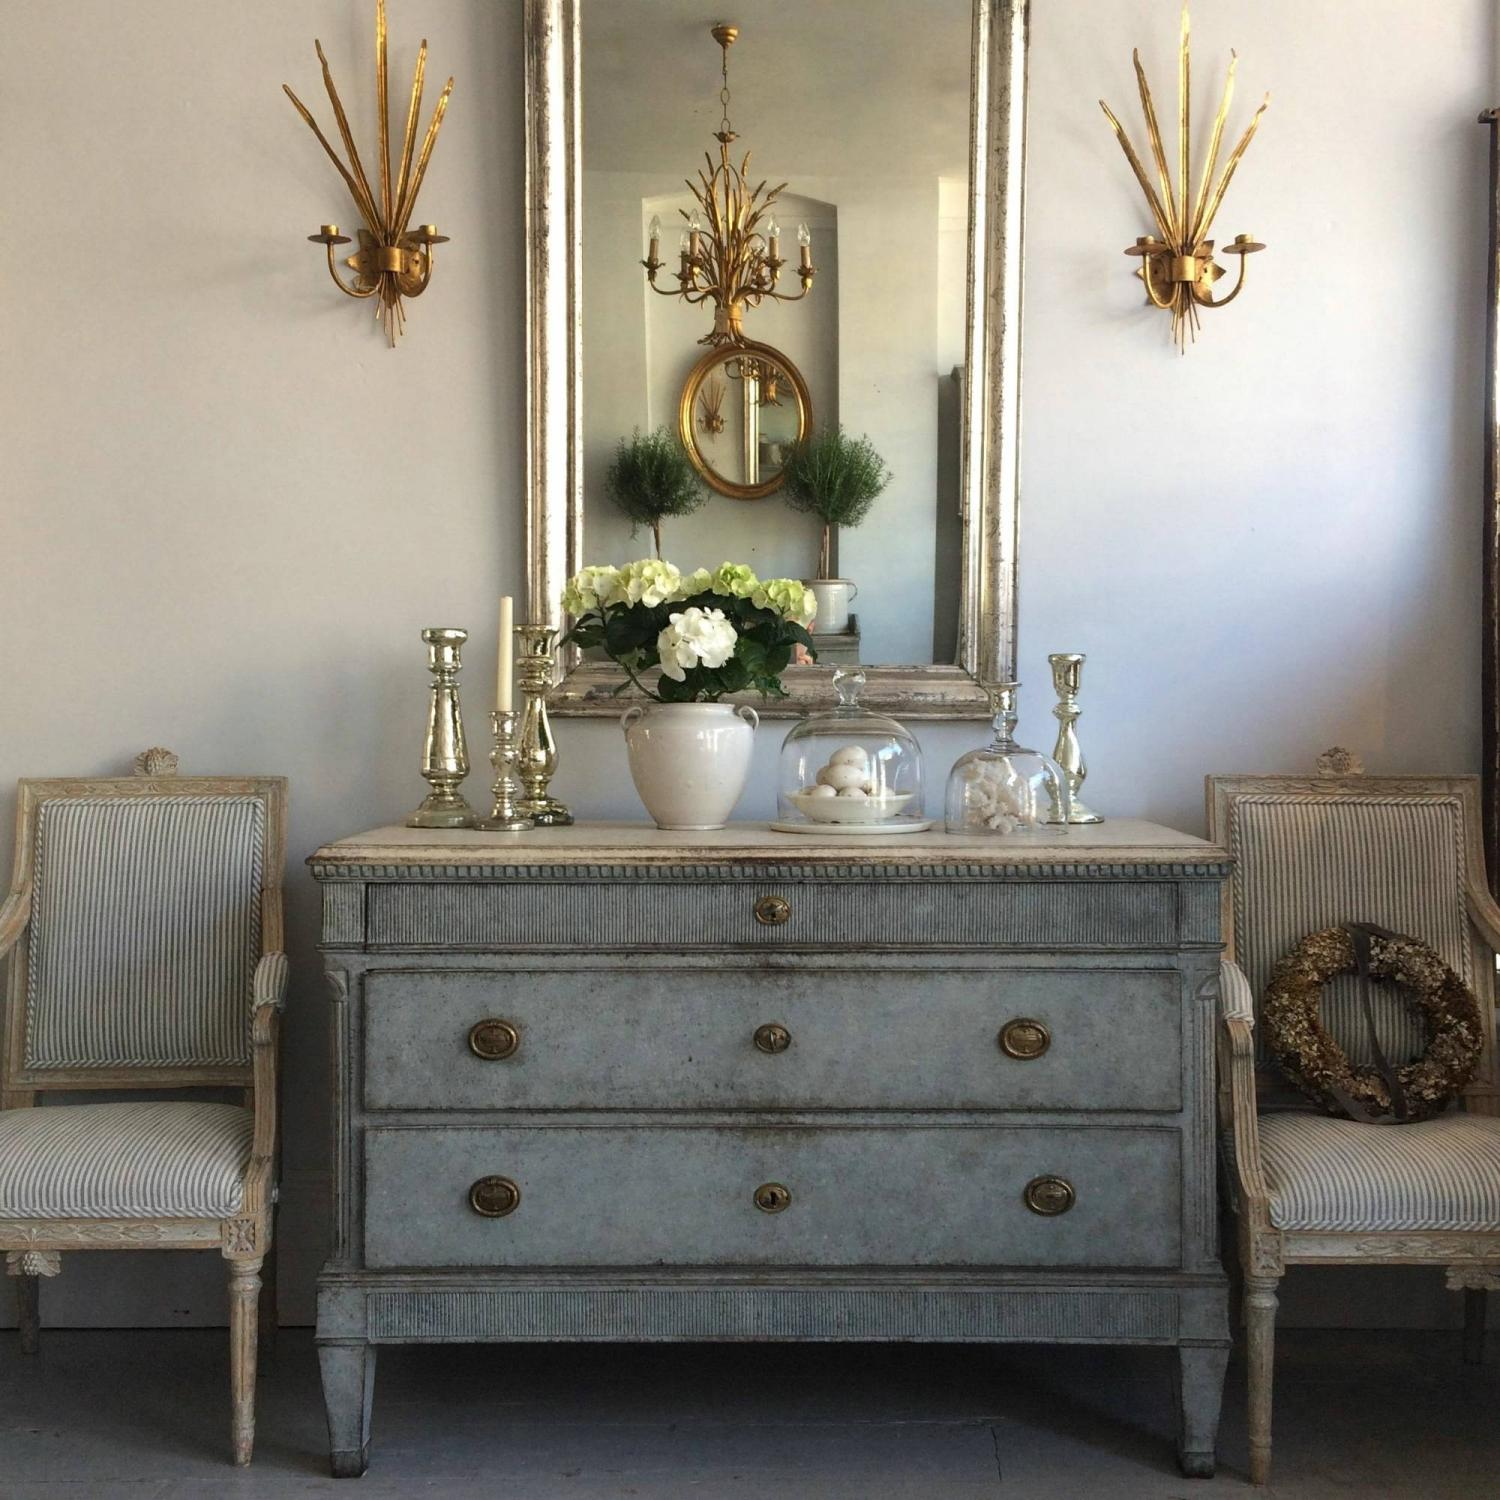 HANDSOME SCANDINAVIAN CHEST IN THE GUSTAVIAN STYLE